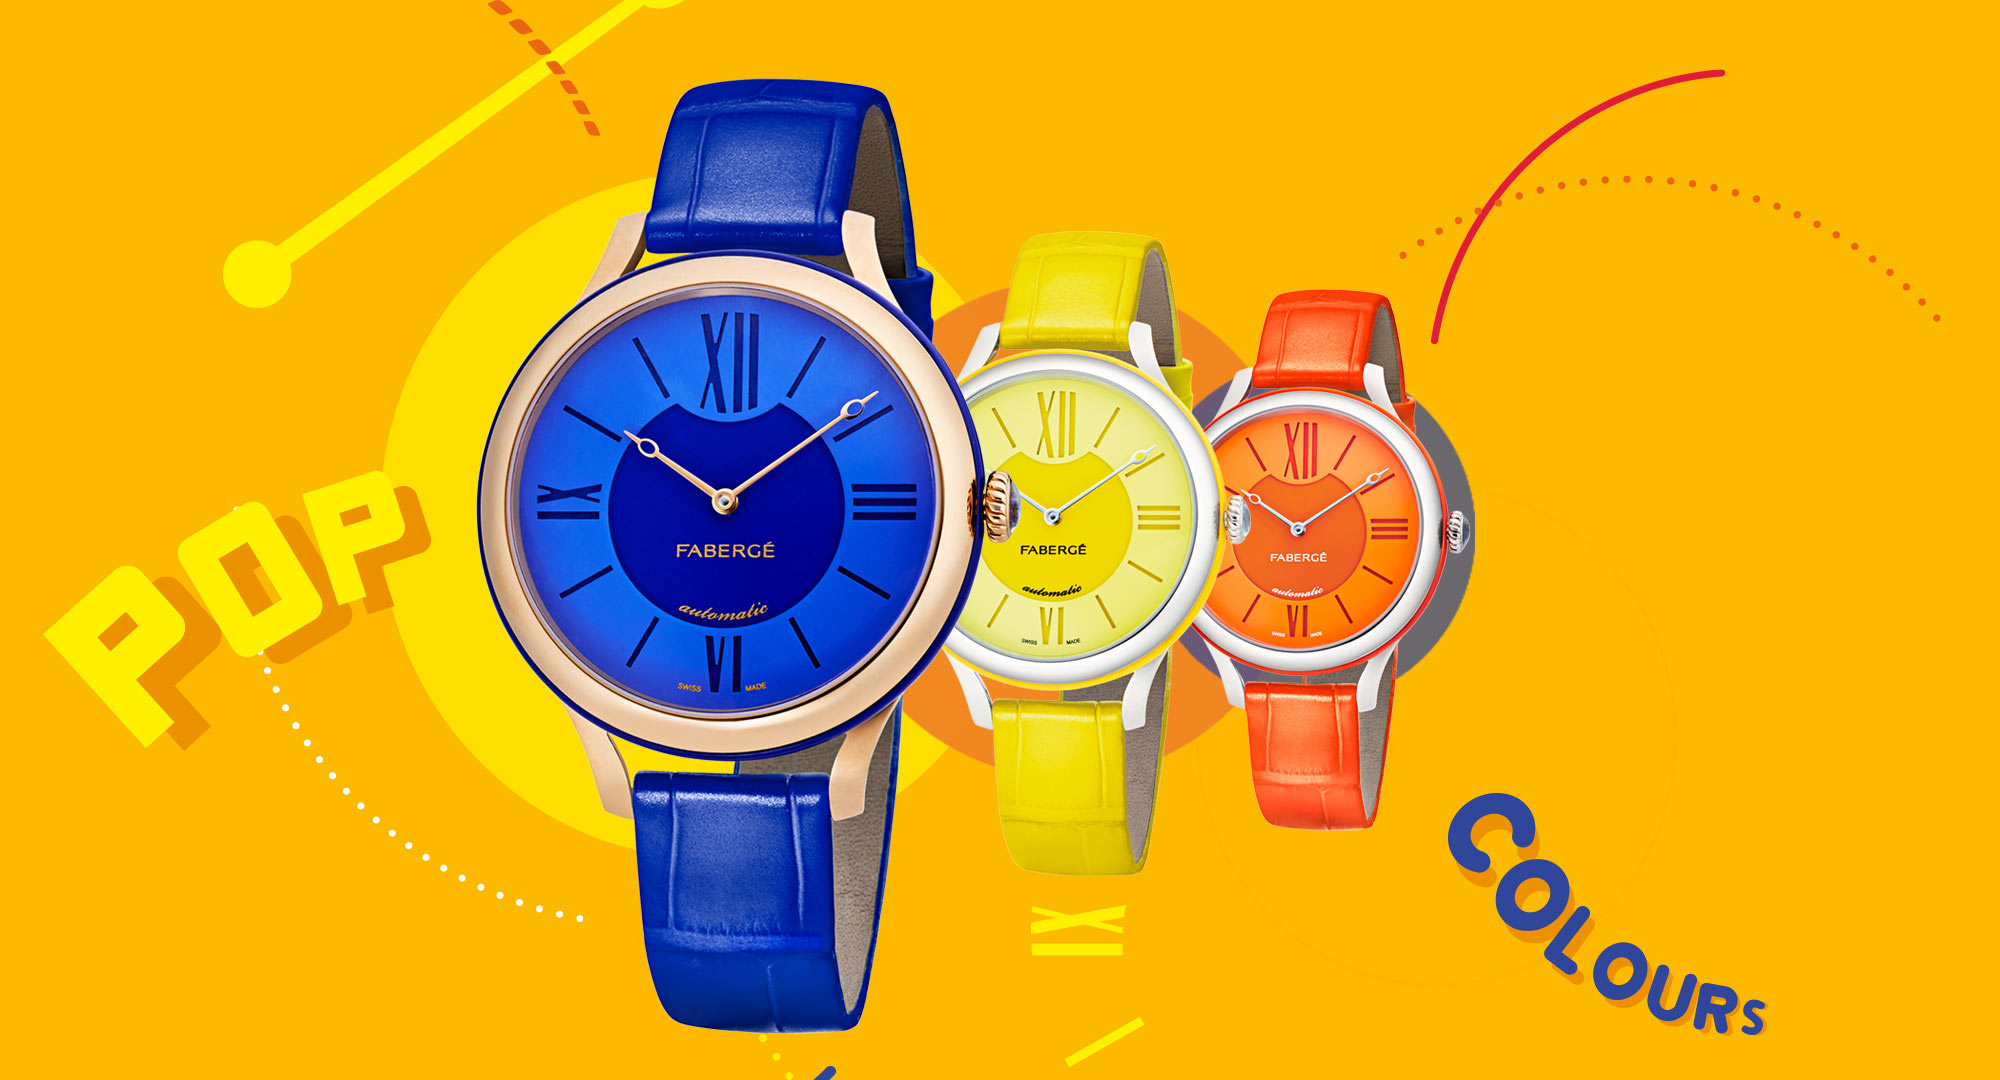 Three watches from Fabergé Flirt Collection. One blue watch, one yellow watch, one orange watch.